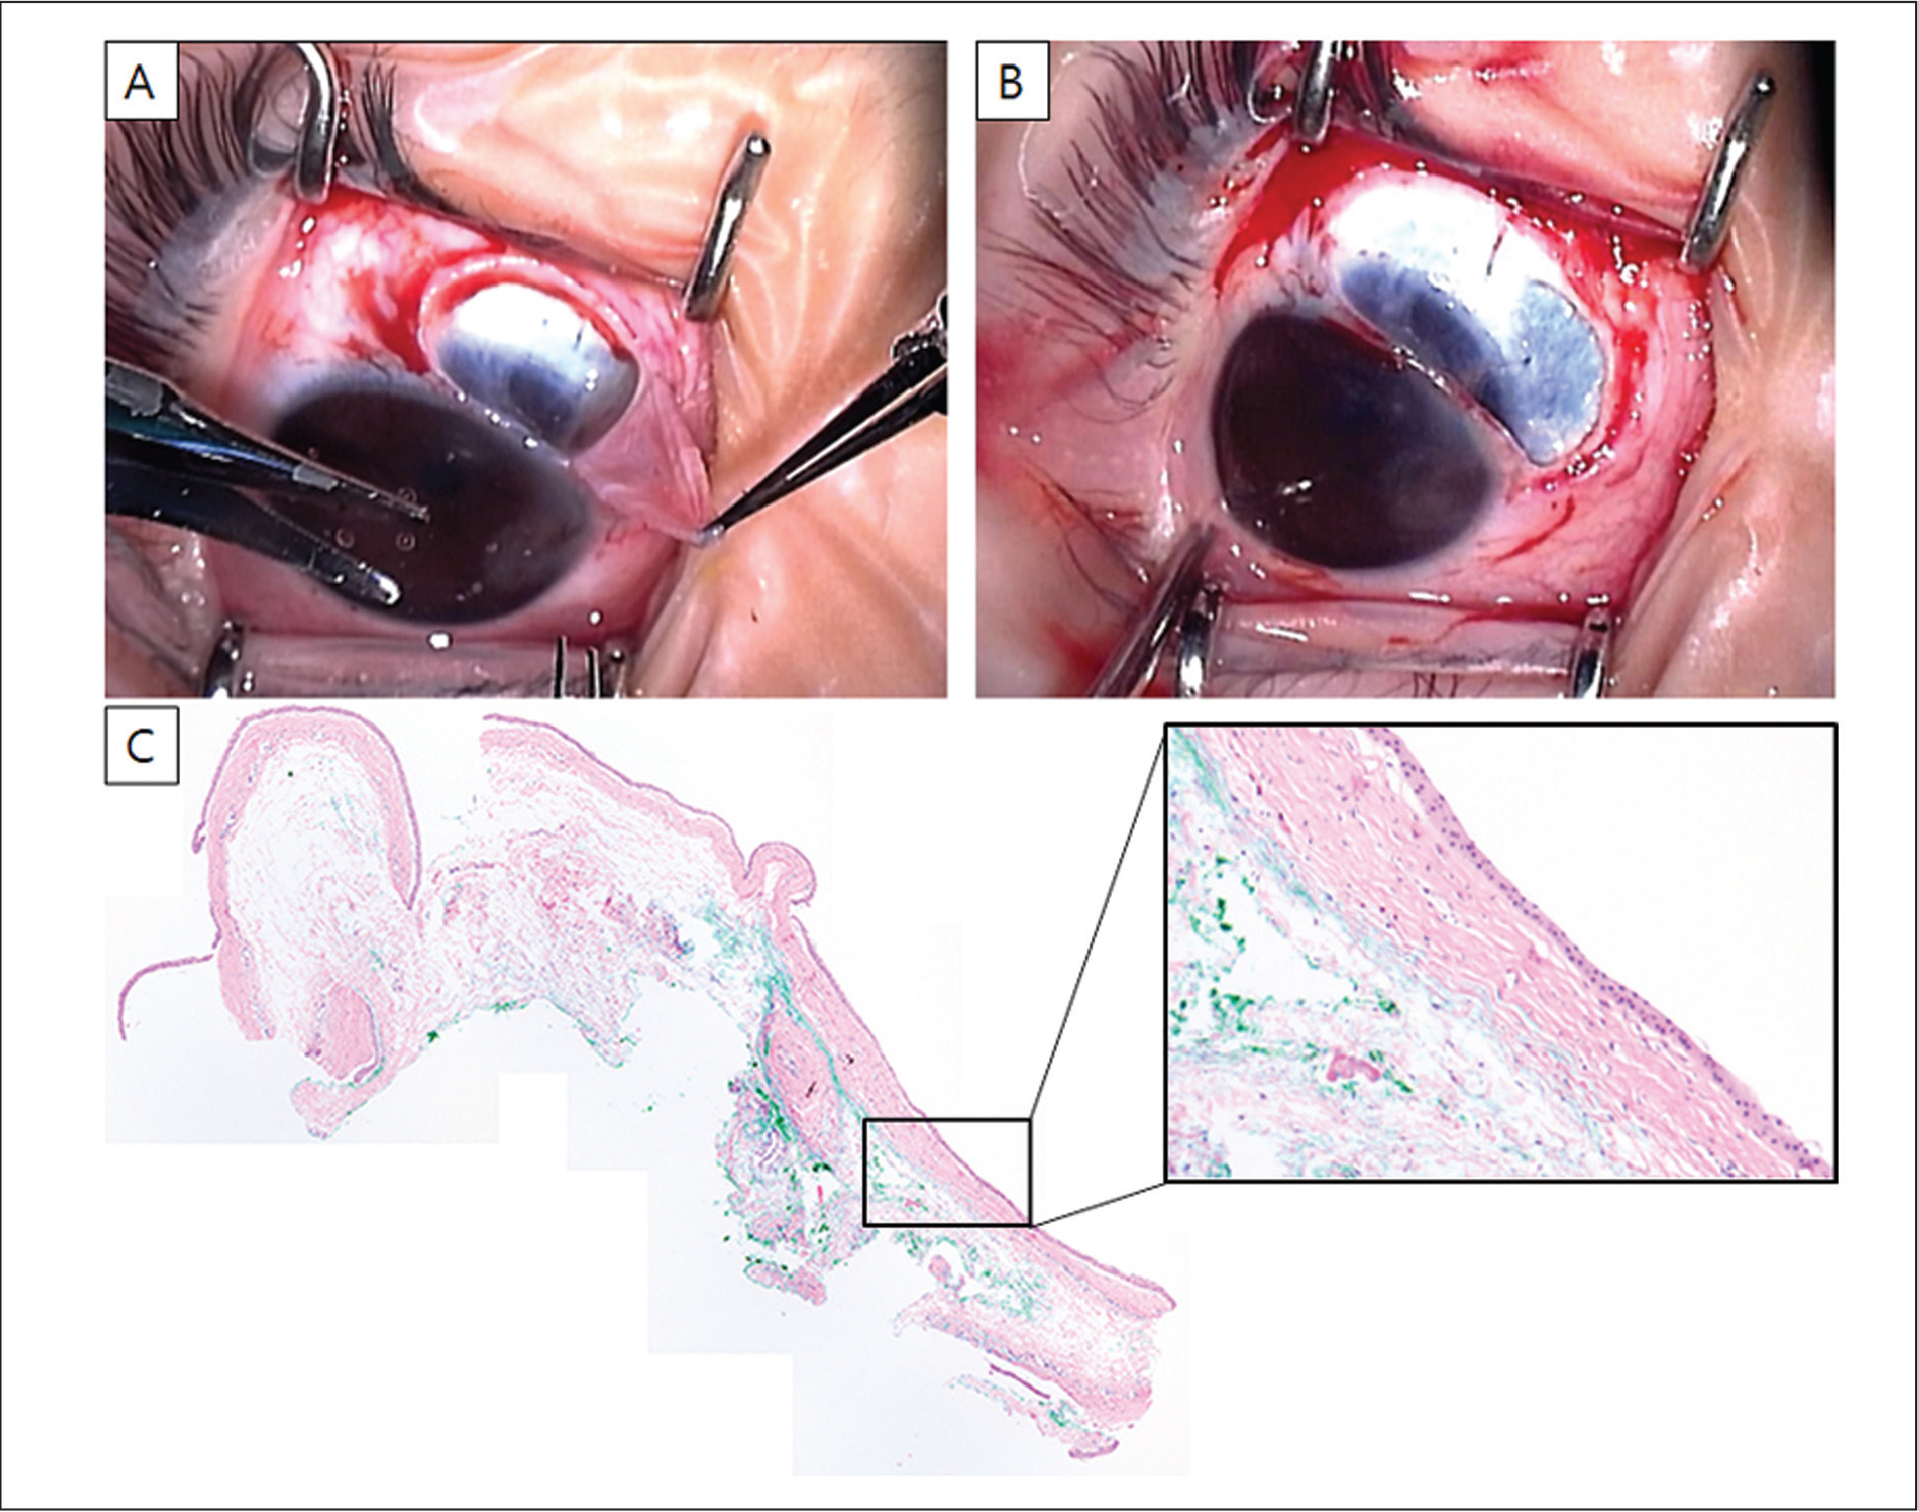 (A and B) Anterior segment photography during surgery. (A) After excision of the anterior wall of the scleral cyst, (B) the underlying scleral bed was thin. (C) Photomicrograph of an excised cystic wall showed a benign cystic lesion lined by non-keratinizing squamous epithelium with stromal edematous change (hematoxylin–eosin stain, original magnification ×100).